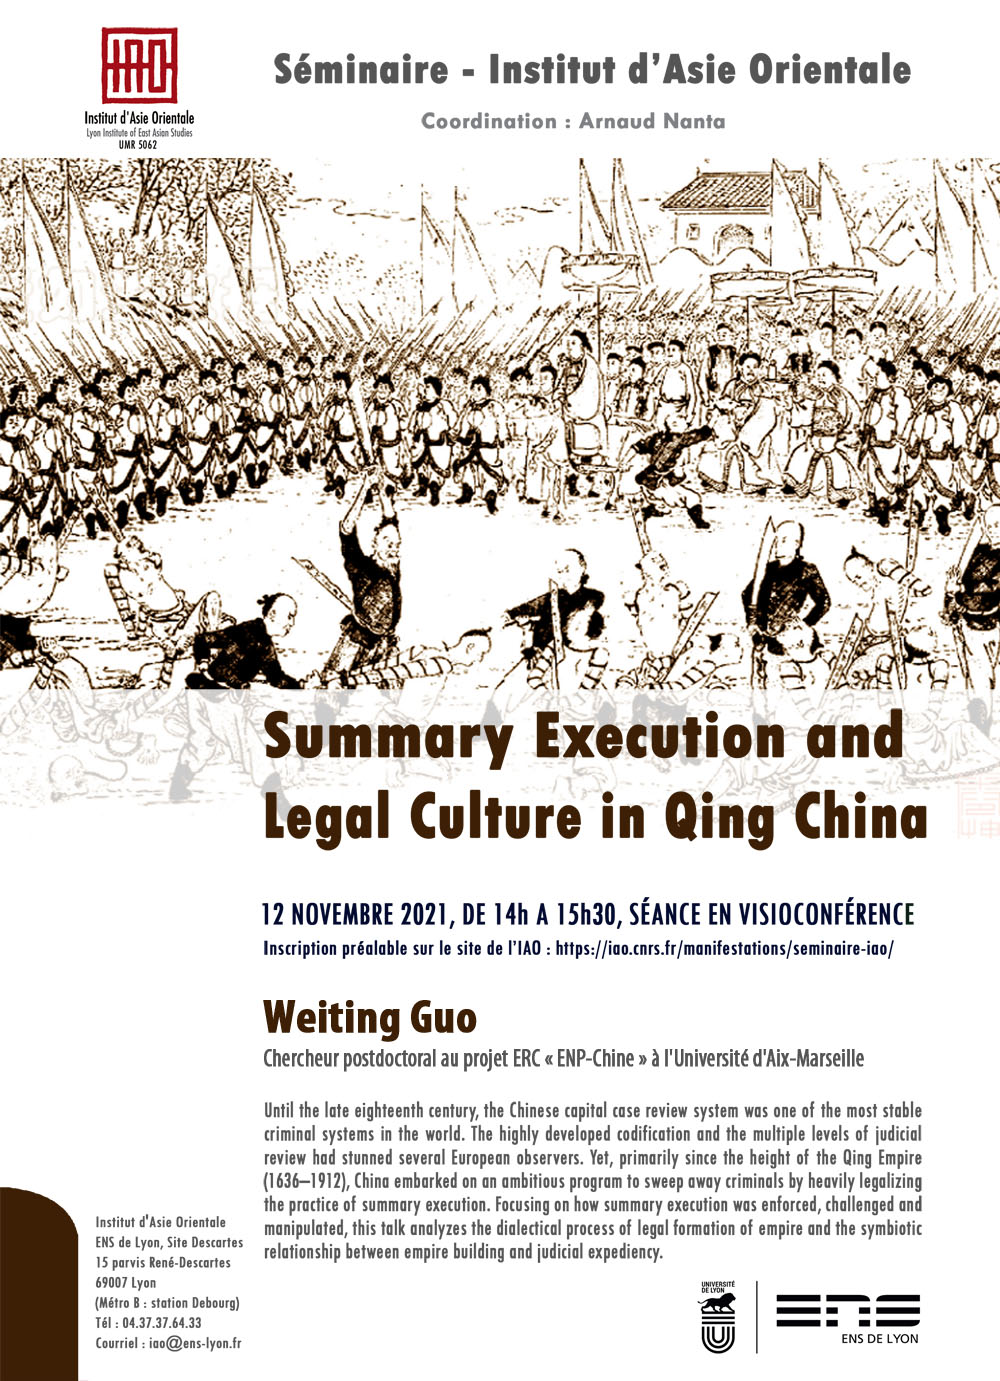 Summary Execution and Legal Culture in Qing China, Weiting Guo